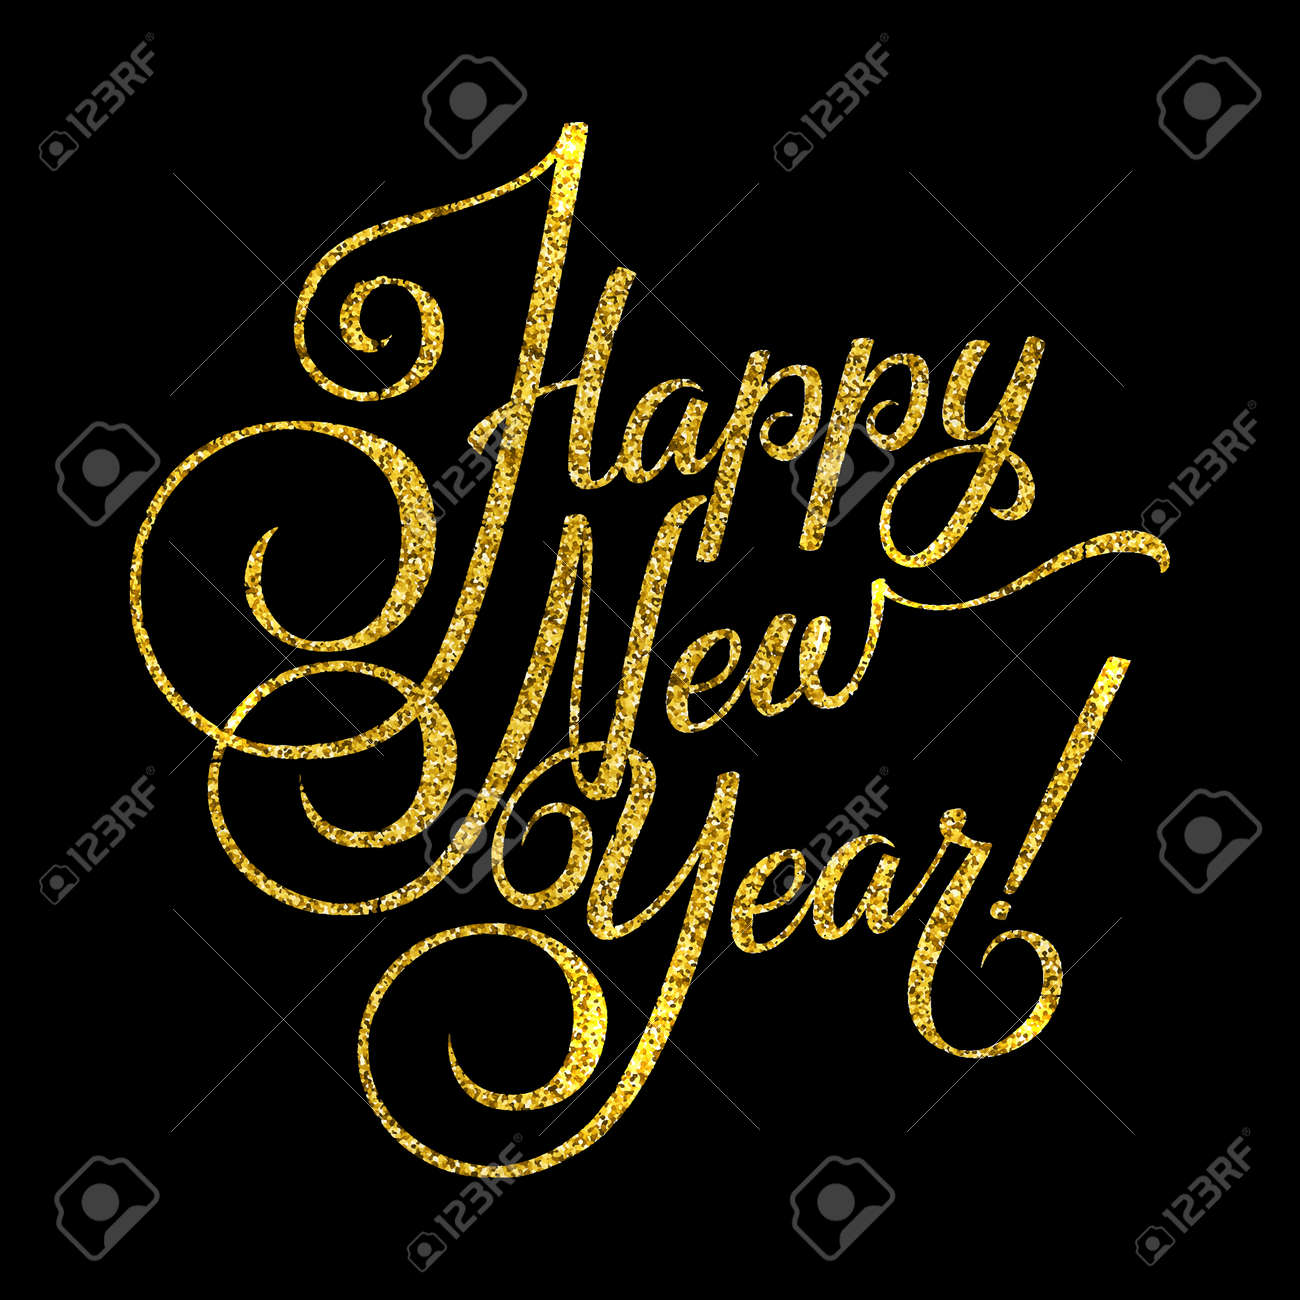 gold happy new year card golden shiny glitter calligraphy greeting poster tamplate black